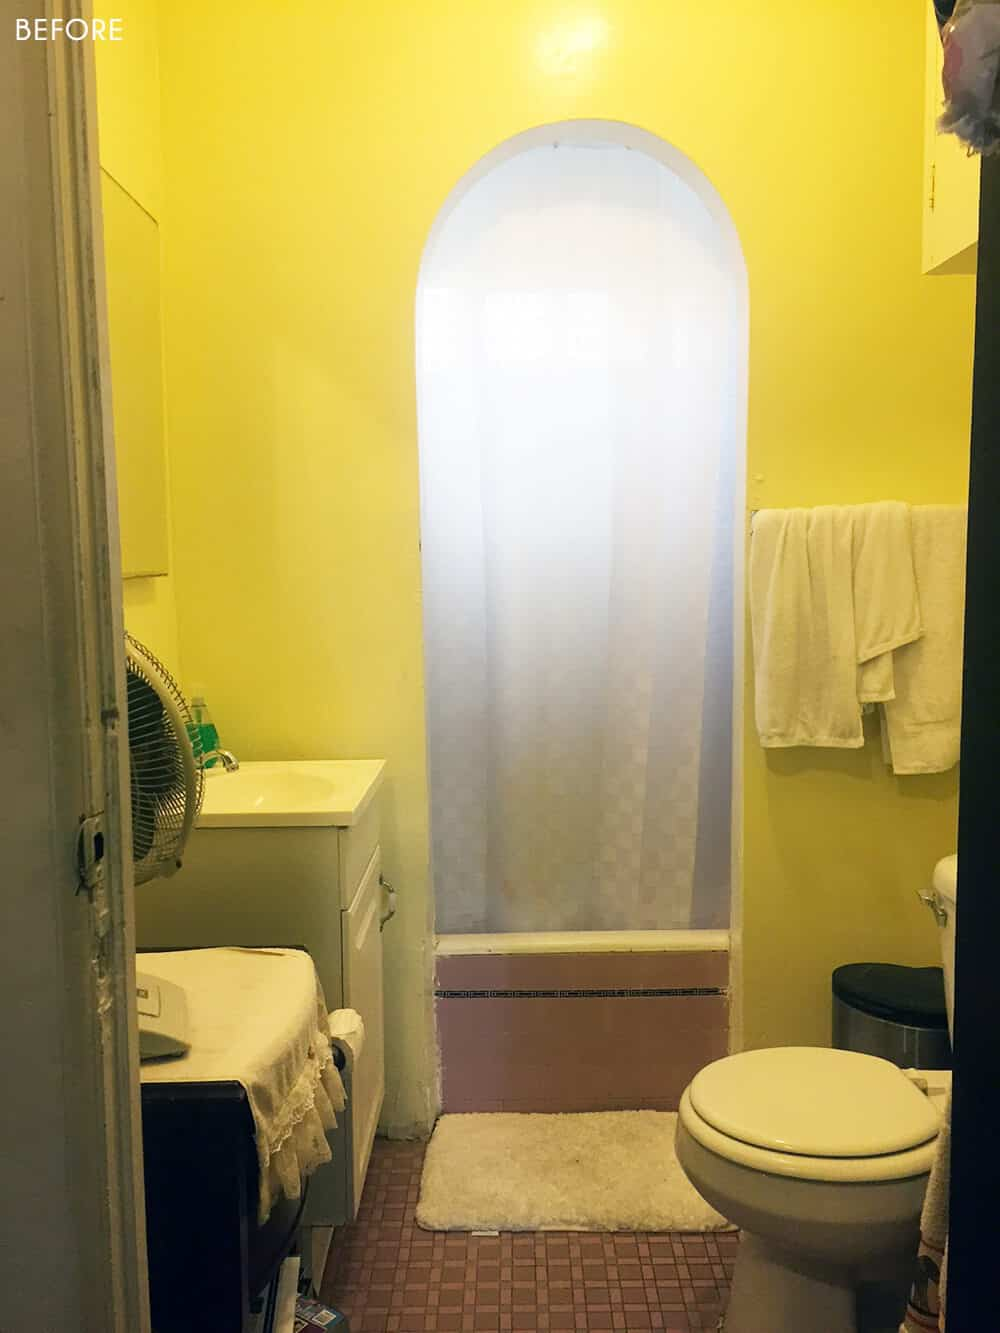 Sylvia Makeover Target Before_Bathroom 1